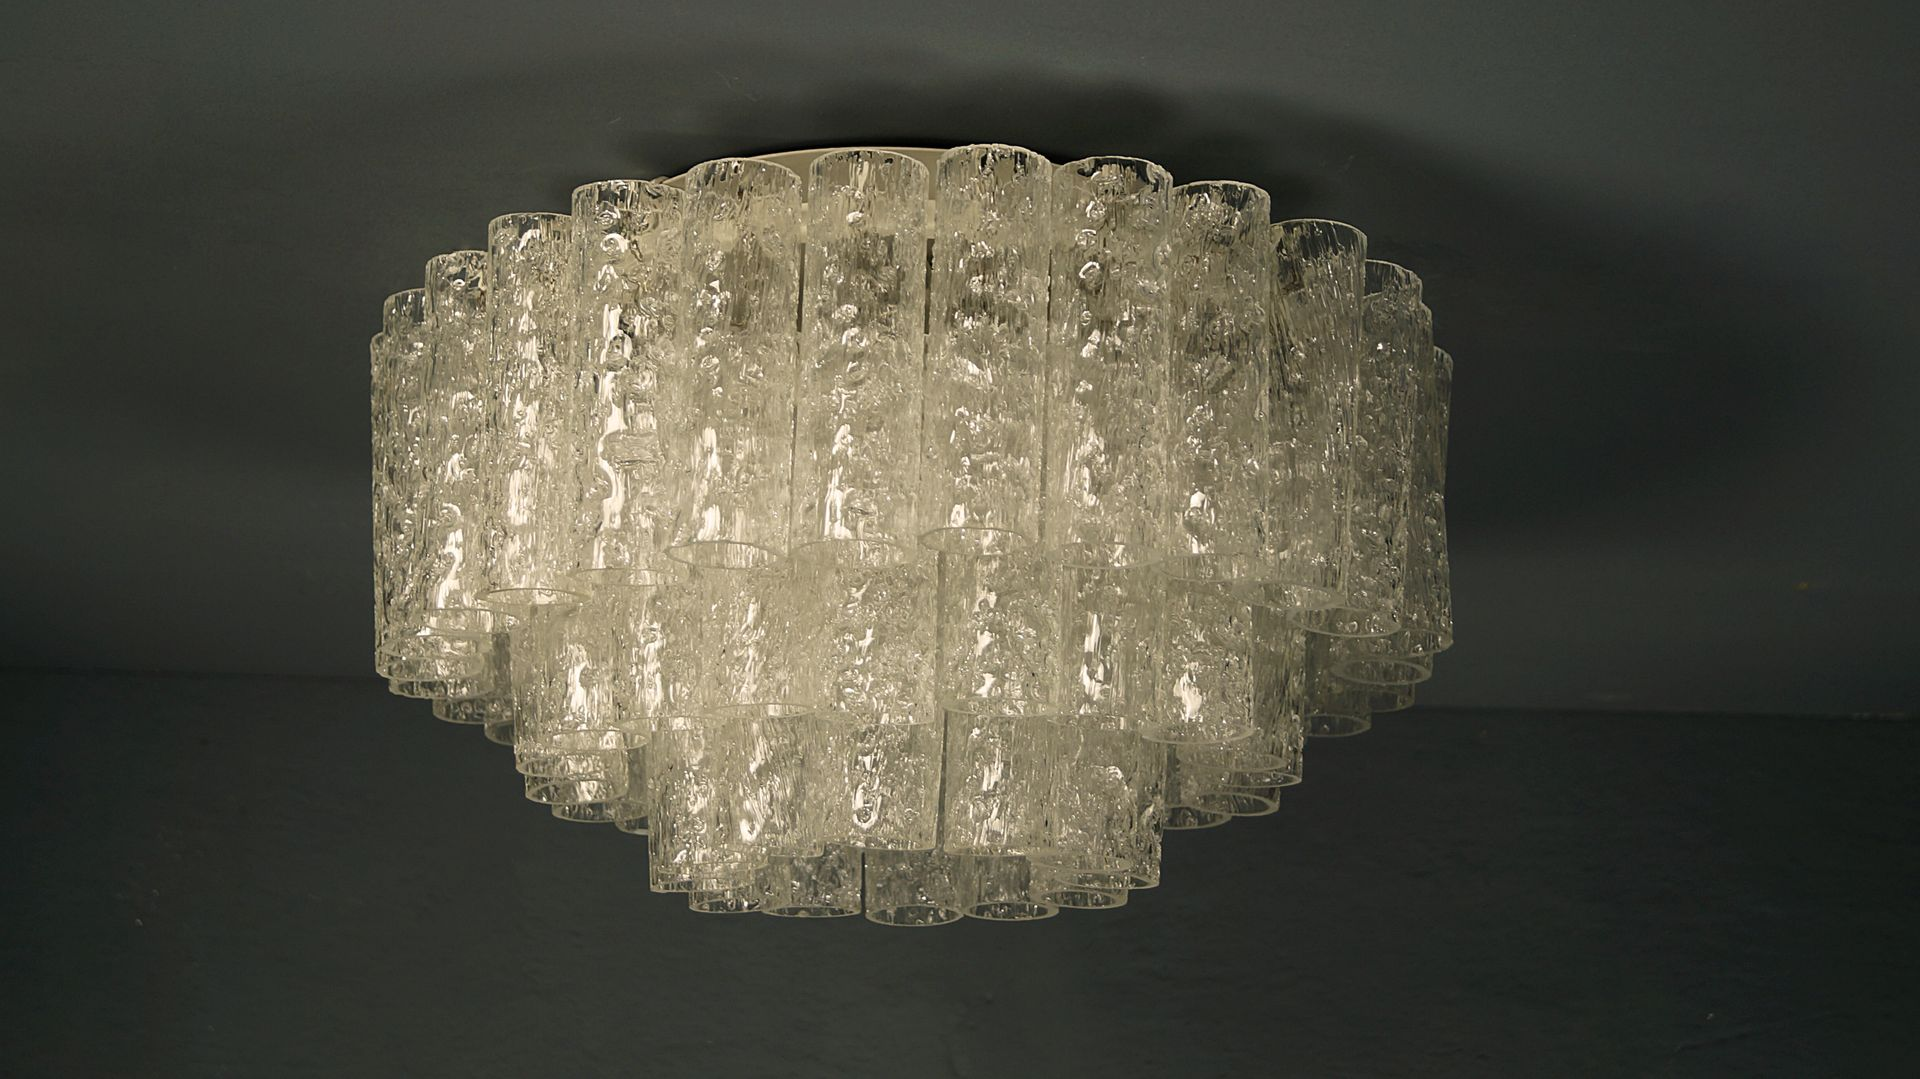 Large vintage 3 tier glass chandelier from doria leuchten for sale large vintage 3 tier glass chandelier from doria leuchten arubaitofo Image collections